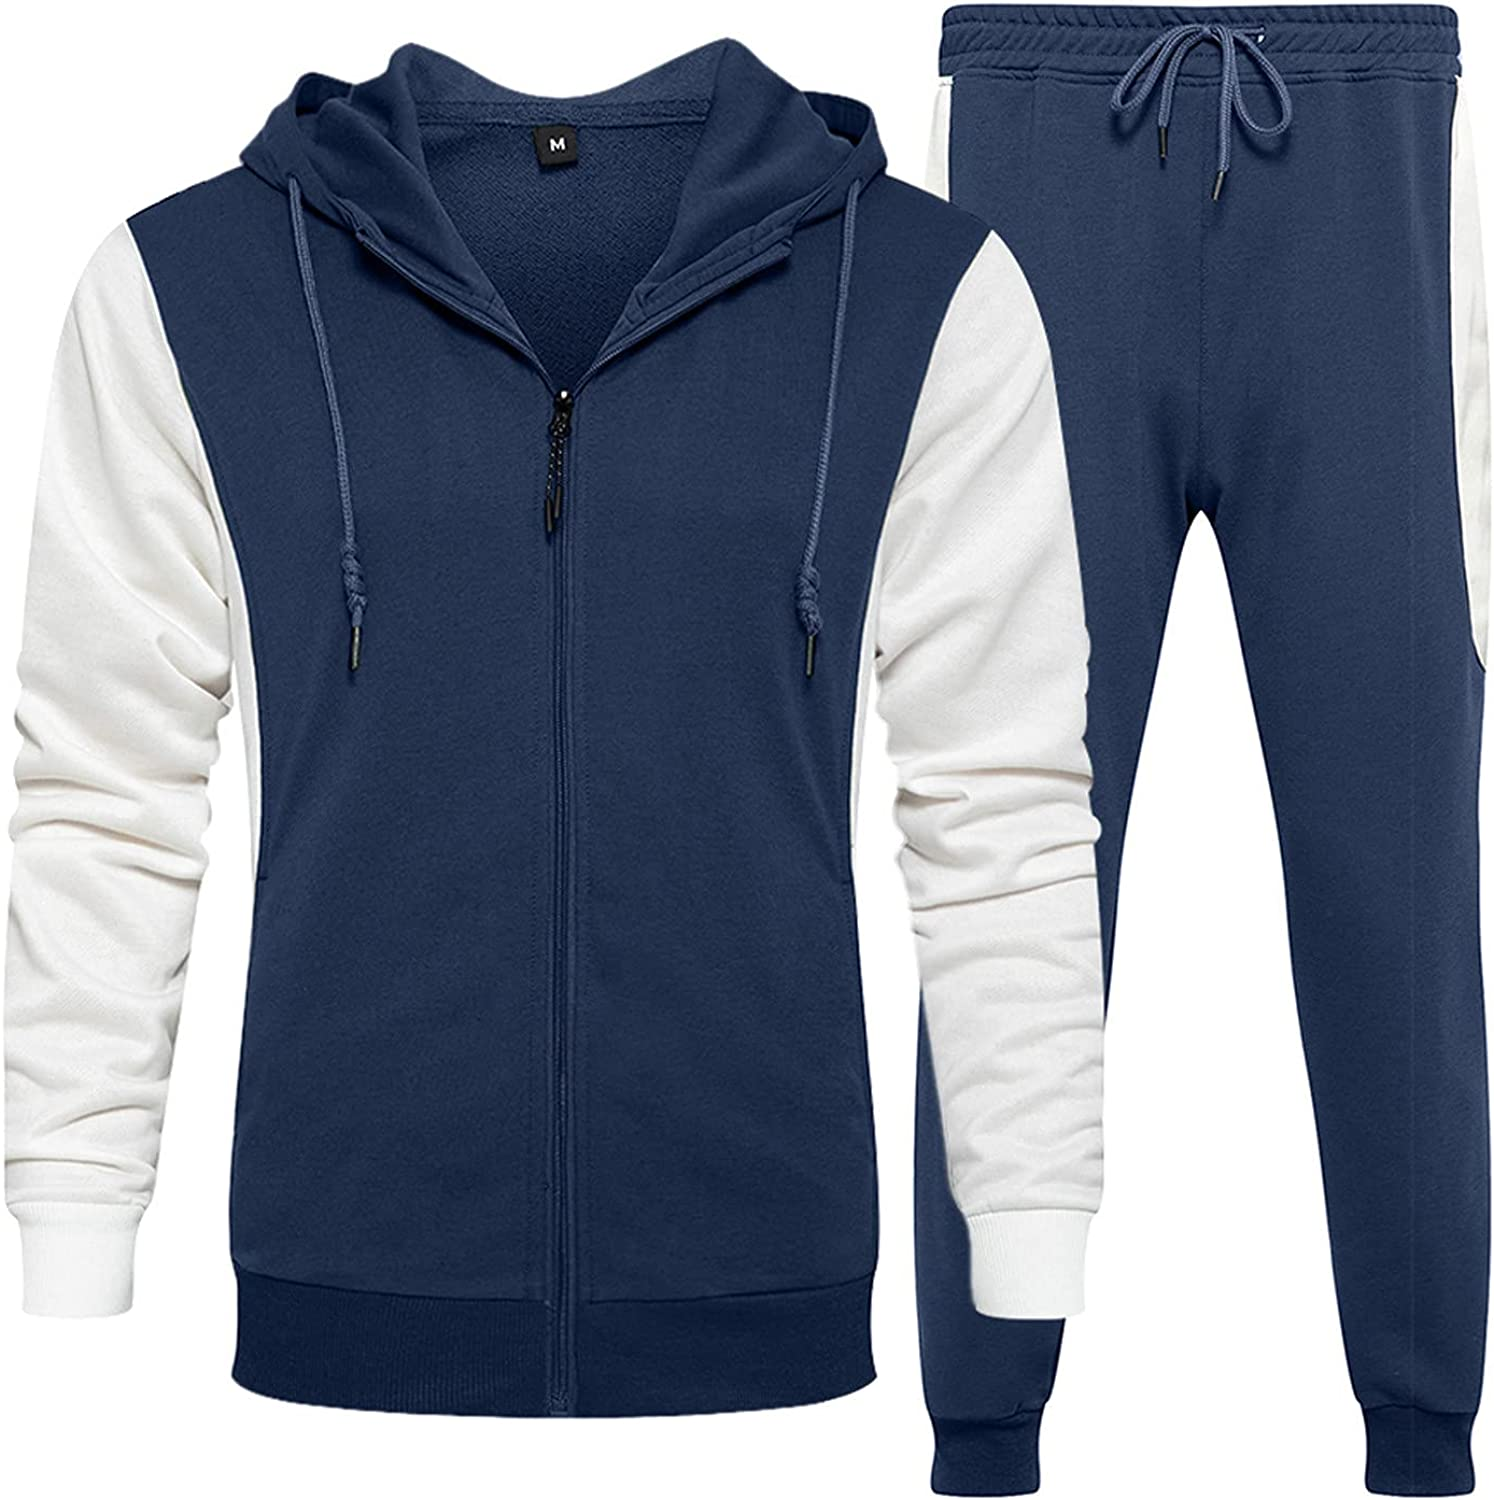 WoCoo Mens Tracksuit 2 Piece Set Patchwork Hooded Blouse & Pants Suits Fashion Full Zip Baseball Athletic Jacket Sets